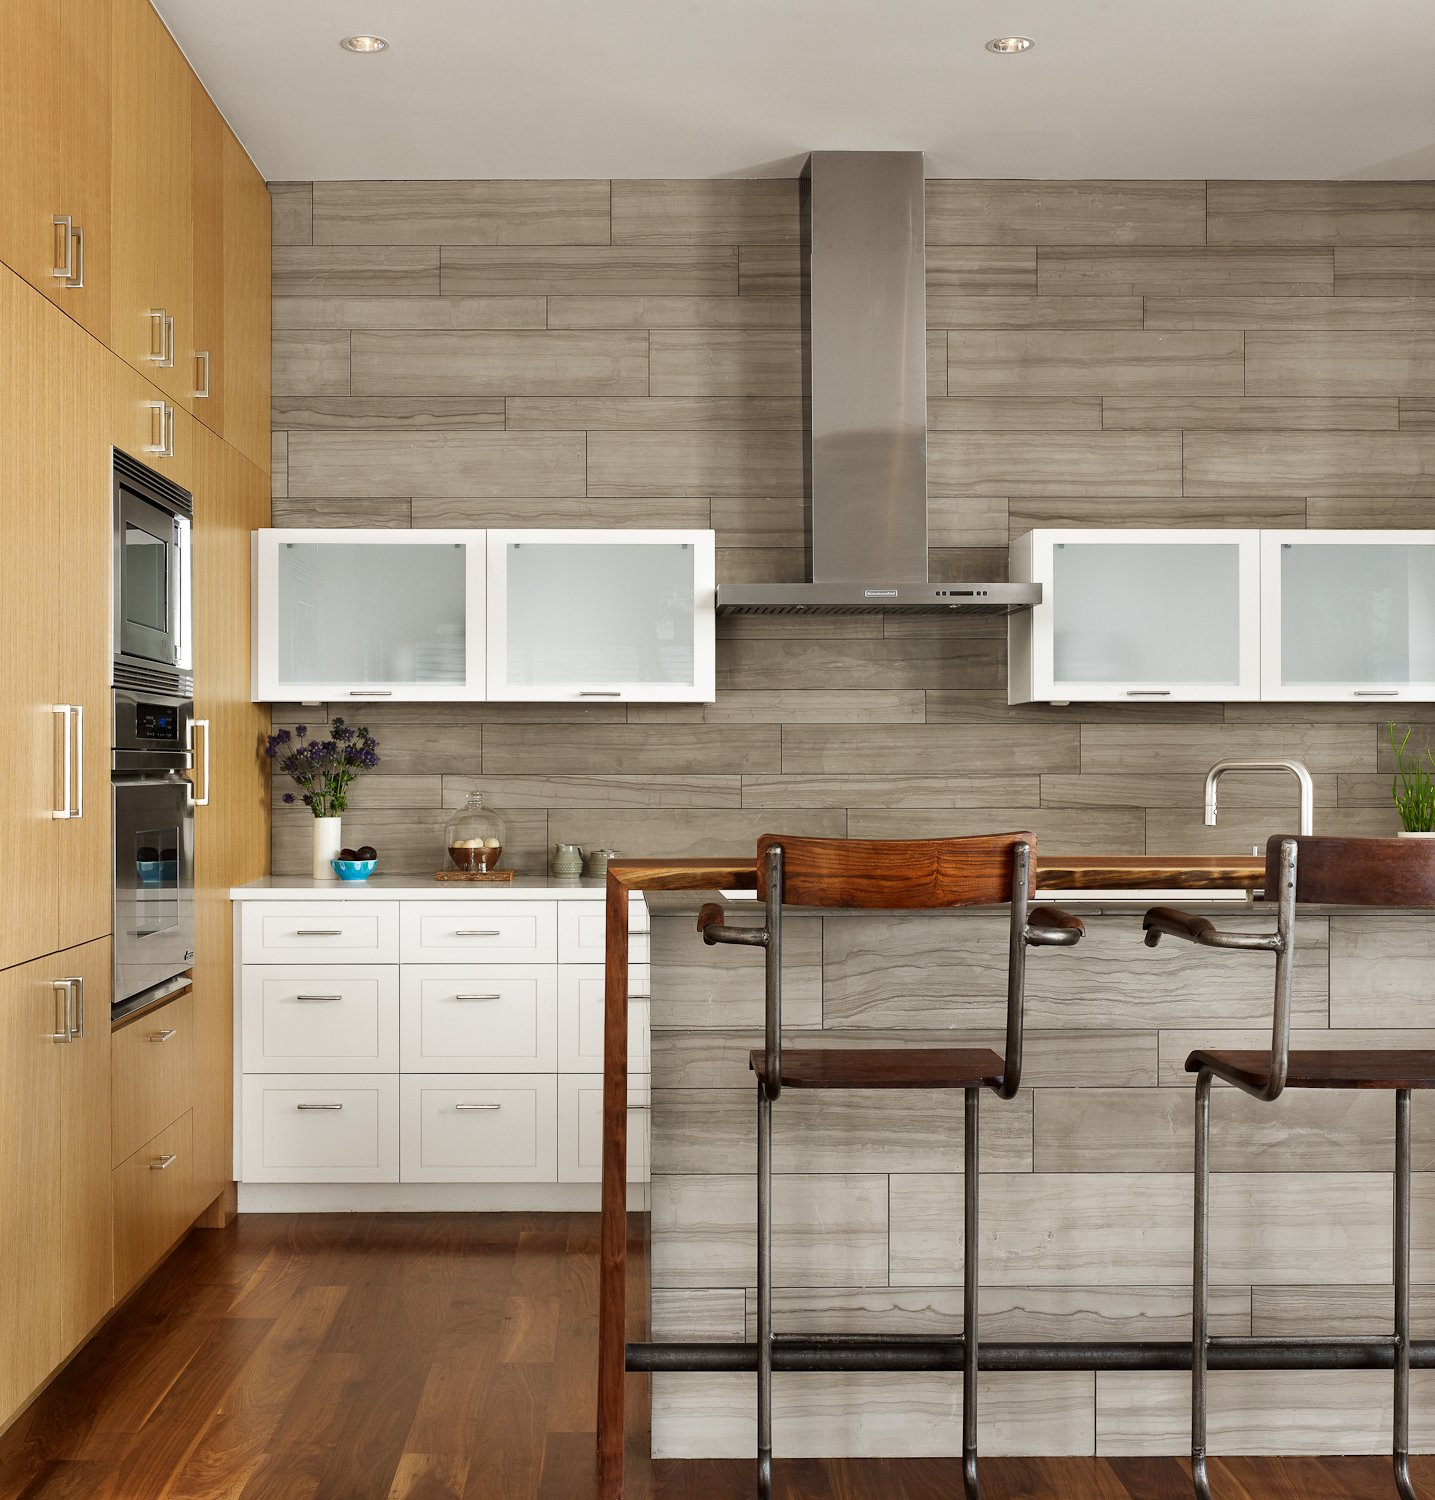 The Kitchen was designed with painted and natural wood finished cabinets.  Vance Lane Residence